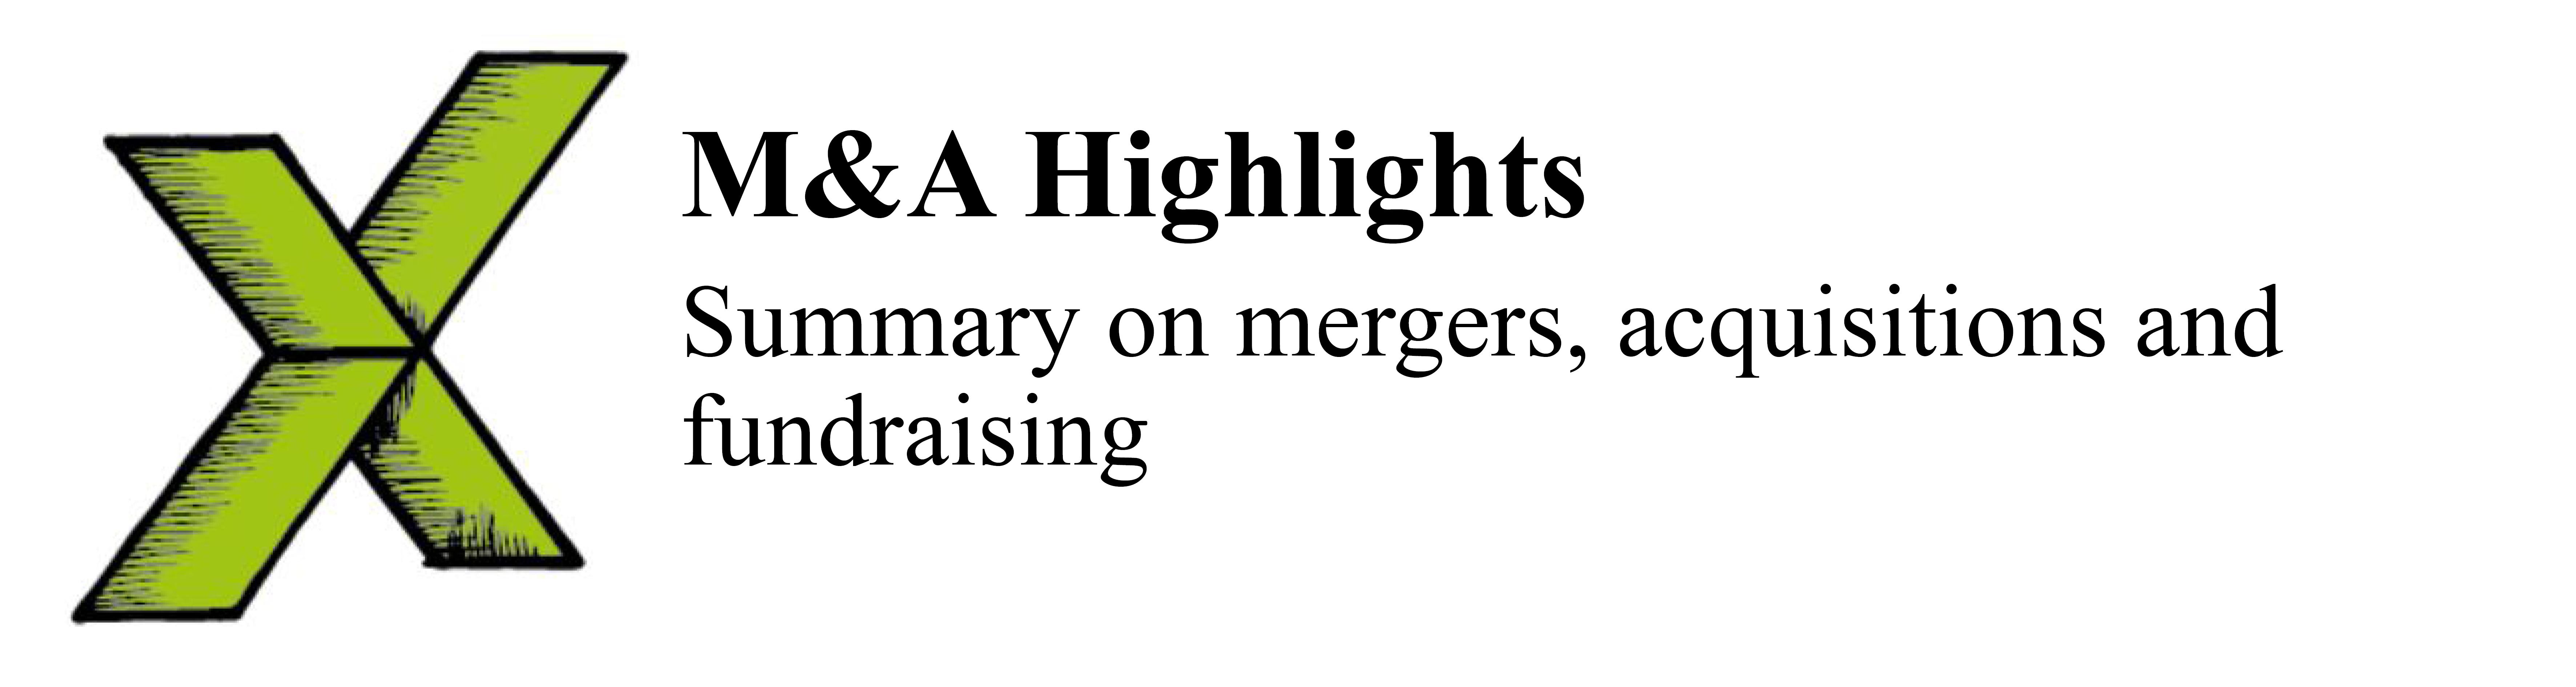 M&A highlights